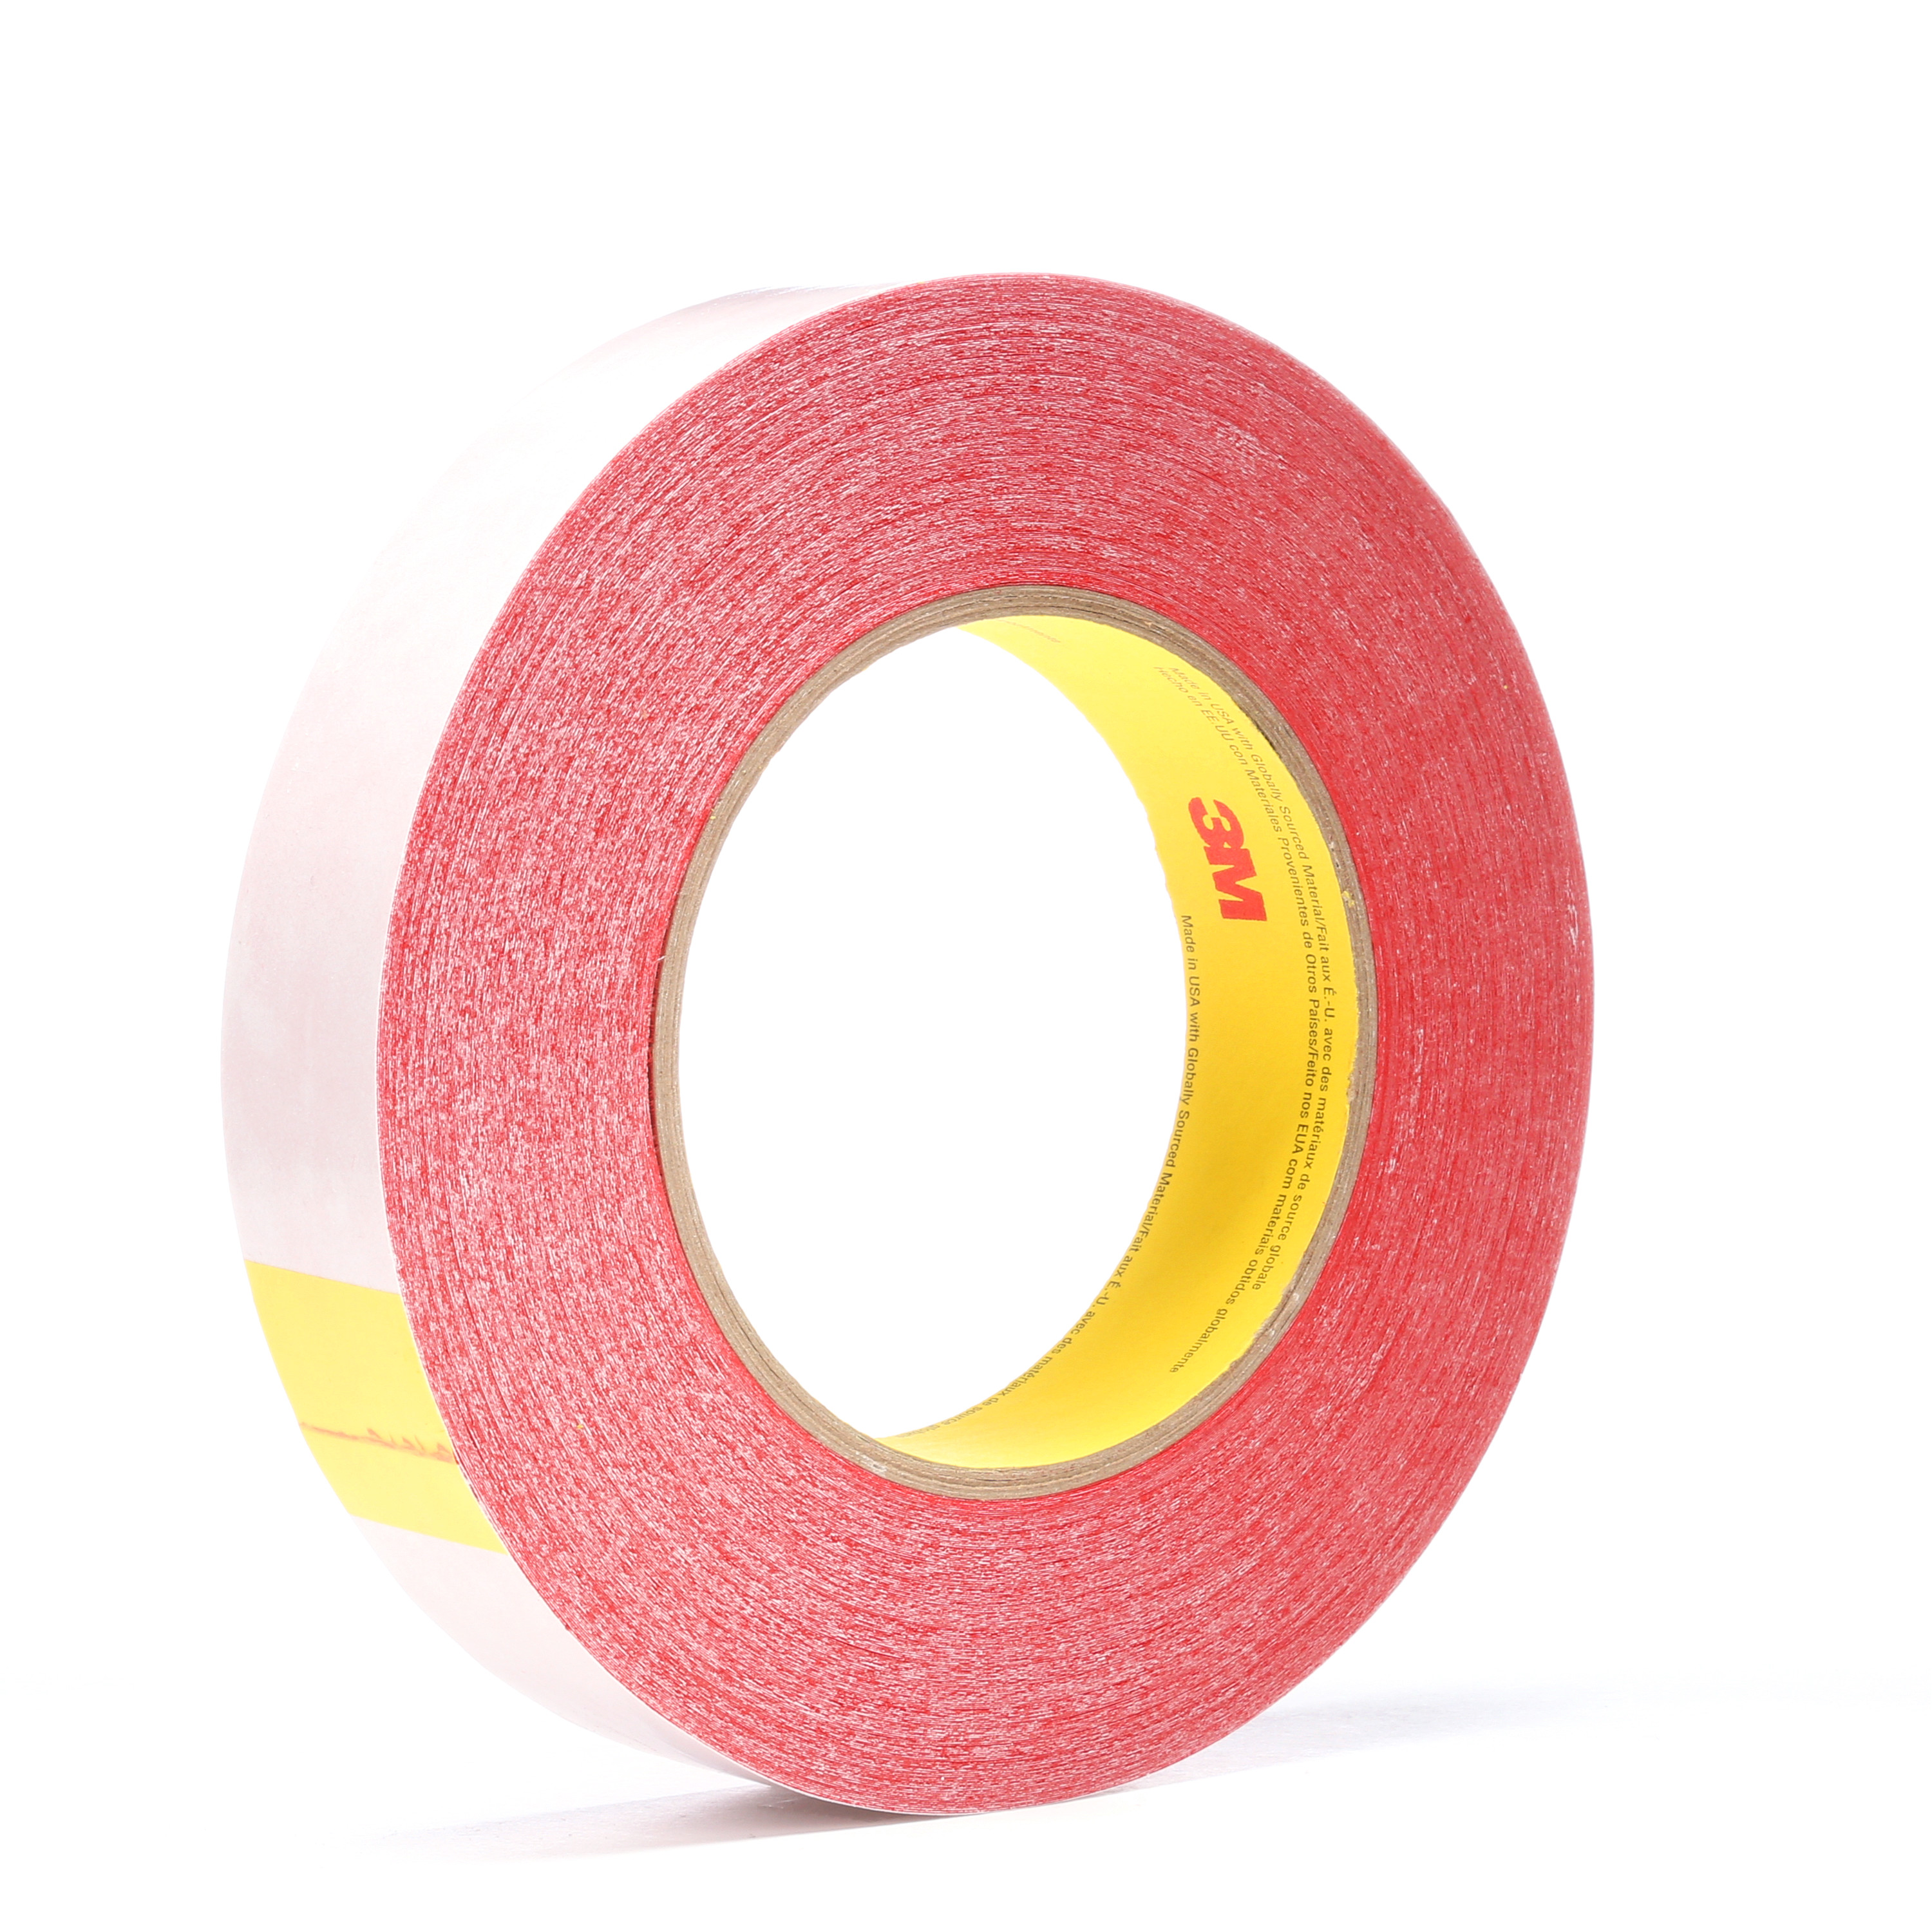 3M™ Double Coated Tape 9737R, Red, 24 mm x 55 m, 3.5 mil, 48 rolls per case